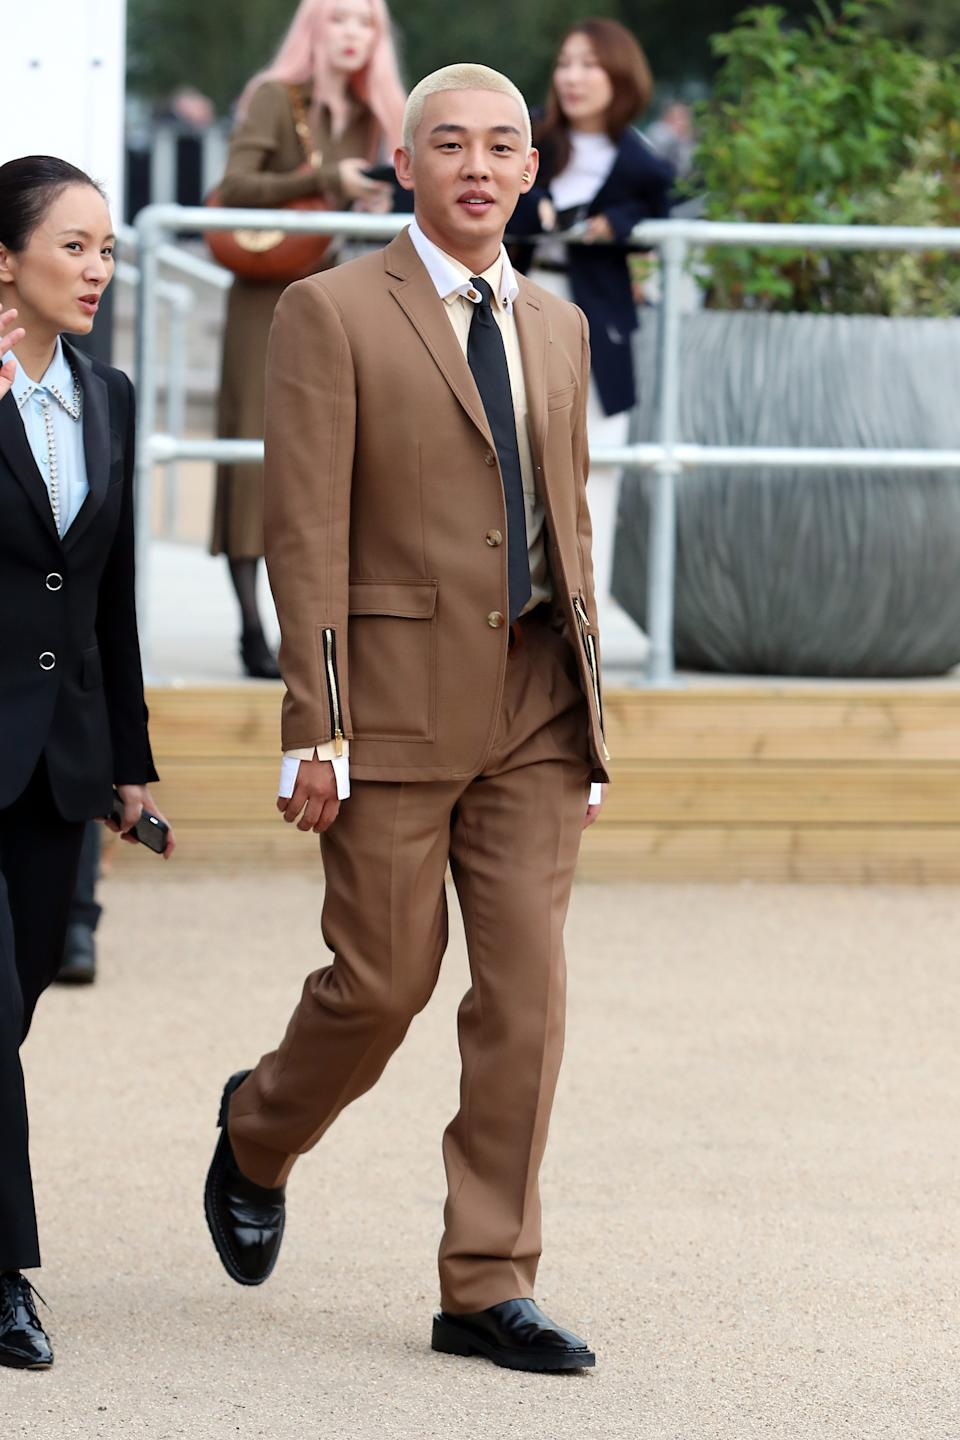 Yoo Ah-in arriving at Burberry's SS20 show. [Photo: Getty Images]